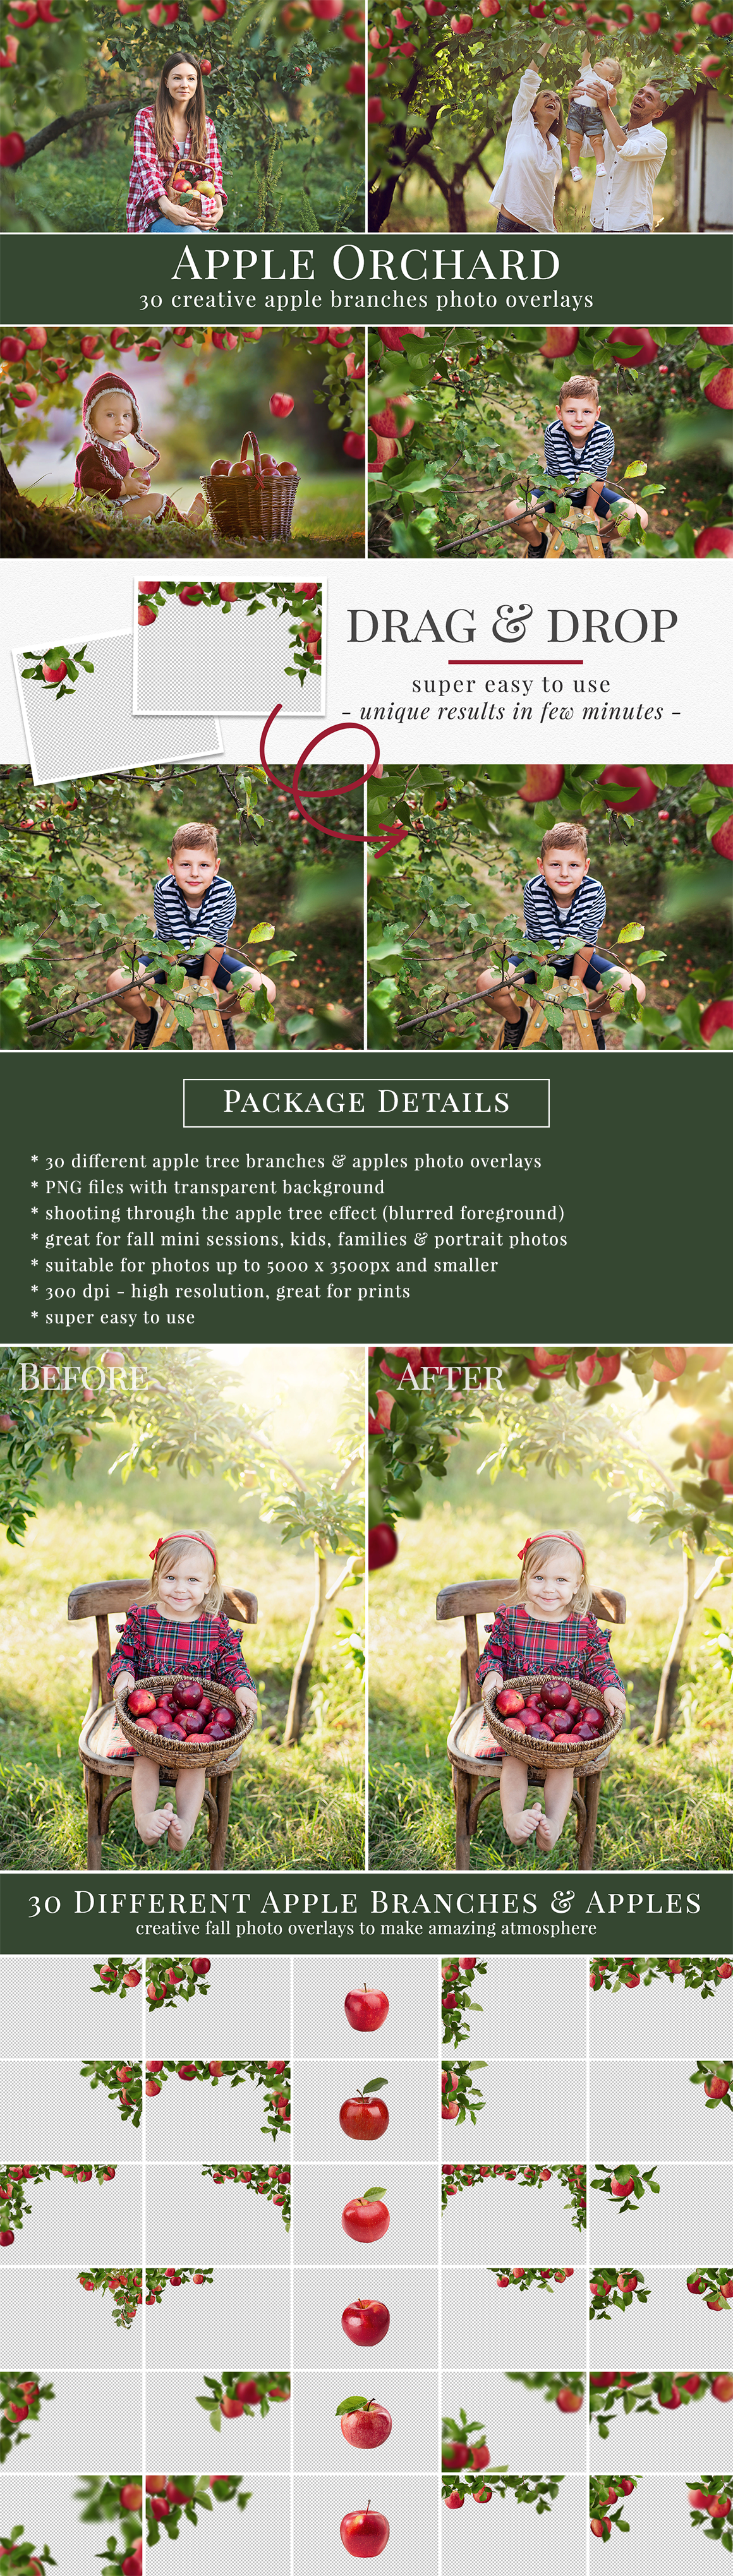 30 different apple branches photo overlays. Great for your fall photography - fall mini sessions, kids, family & portrait pictures. Drag & drop - very easy to use, fast and simple. Original results just in few seconds. Professional autumnal photo overlays for Photoshop, Zoner, Gimp, PicMoneky, Canva, etc. Photo overlays for creative photographers from Brown Leopard.